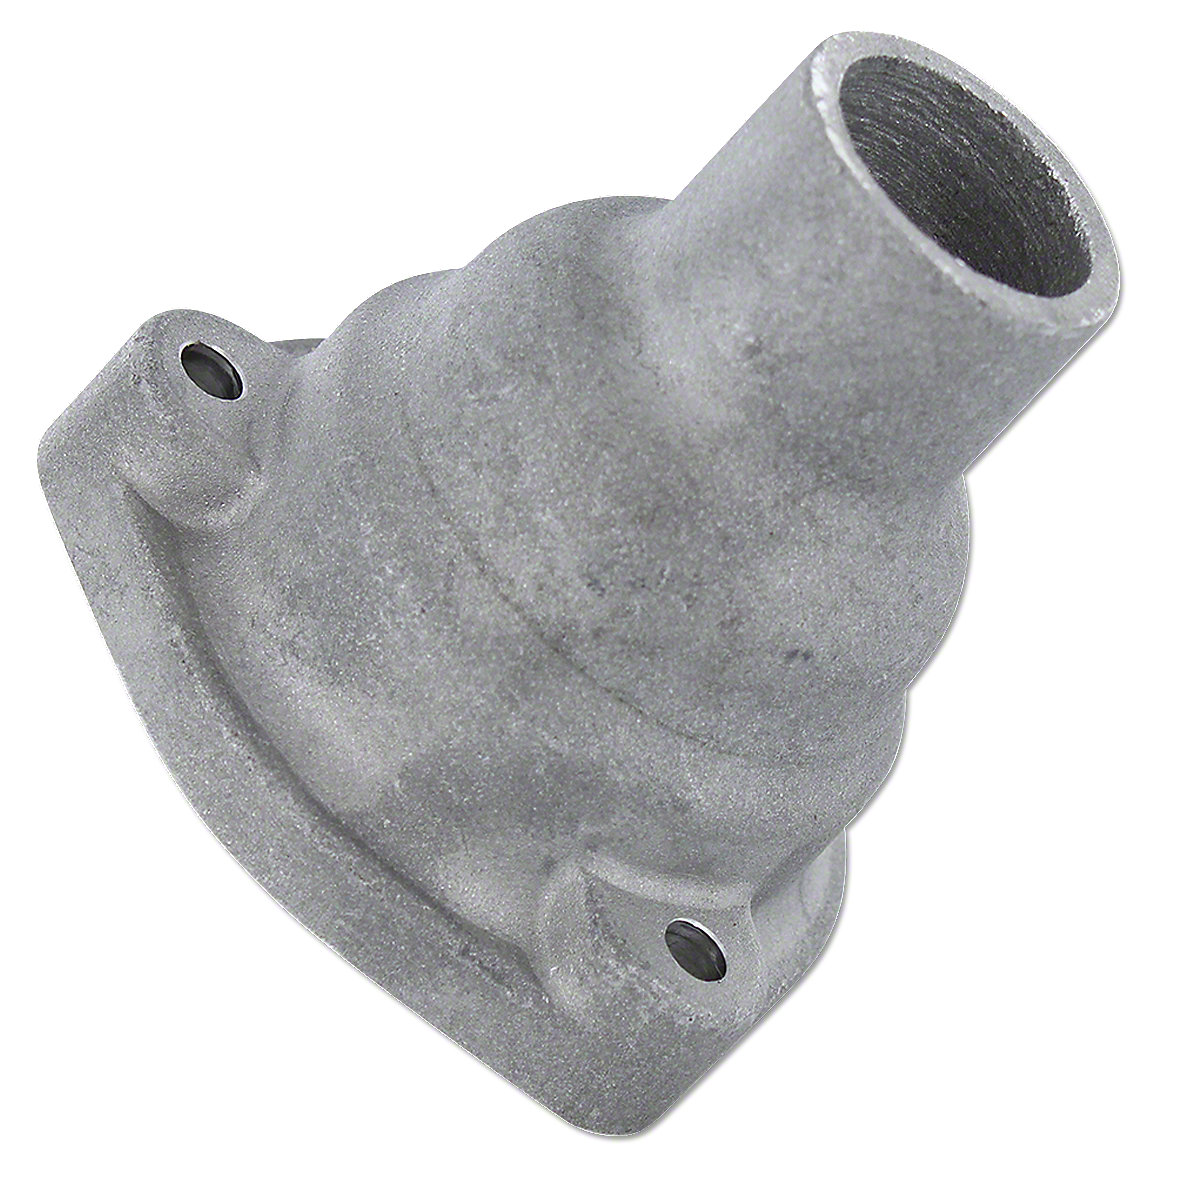 Thermostat Housing For Allis Chalmers: WC, WD, WF